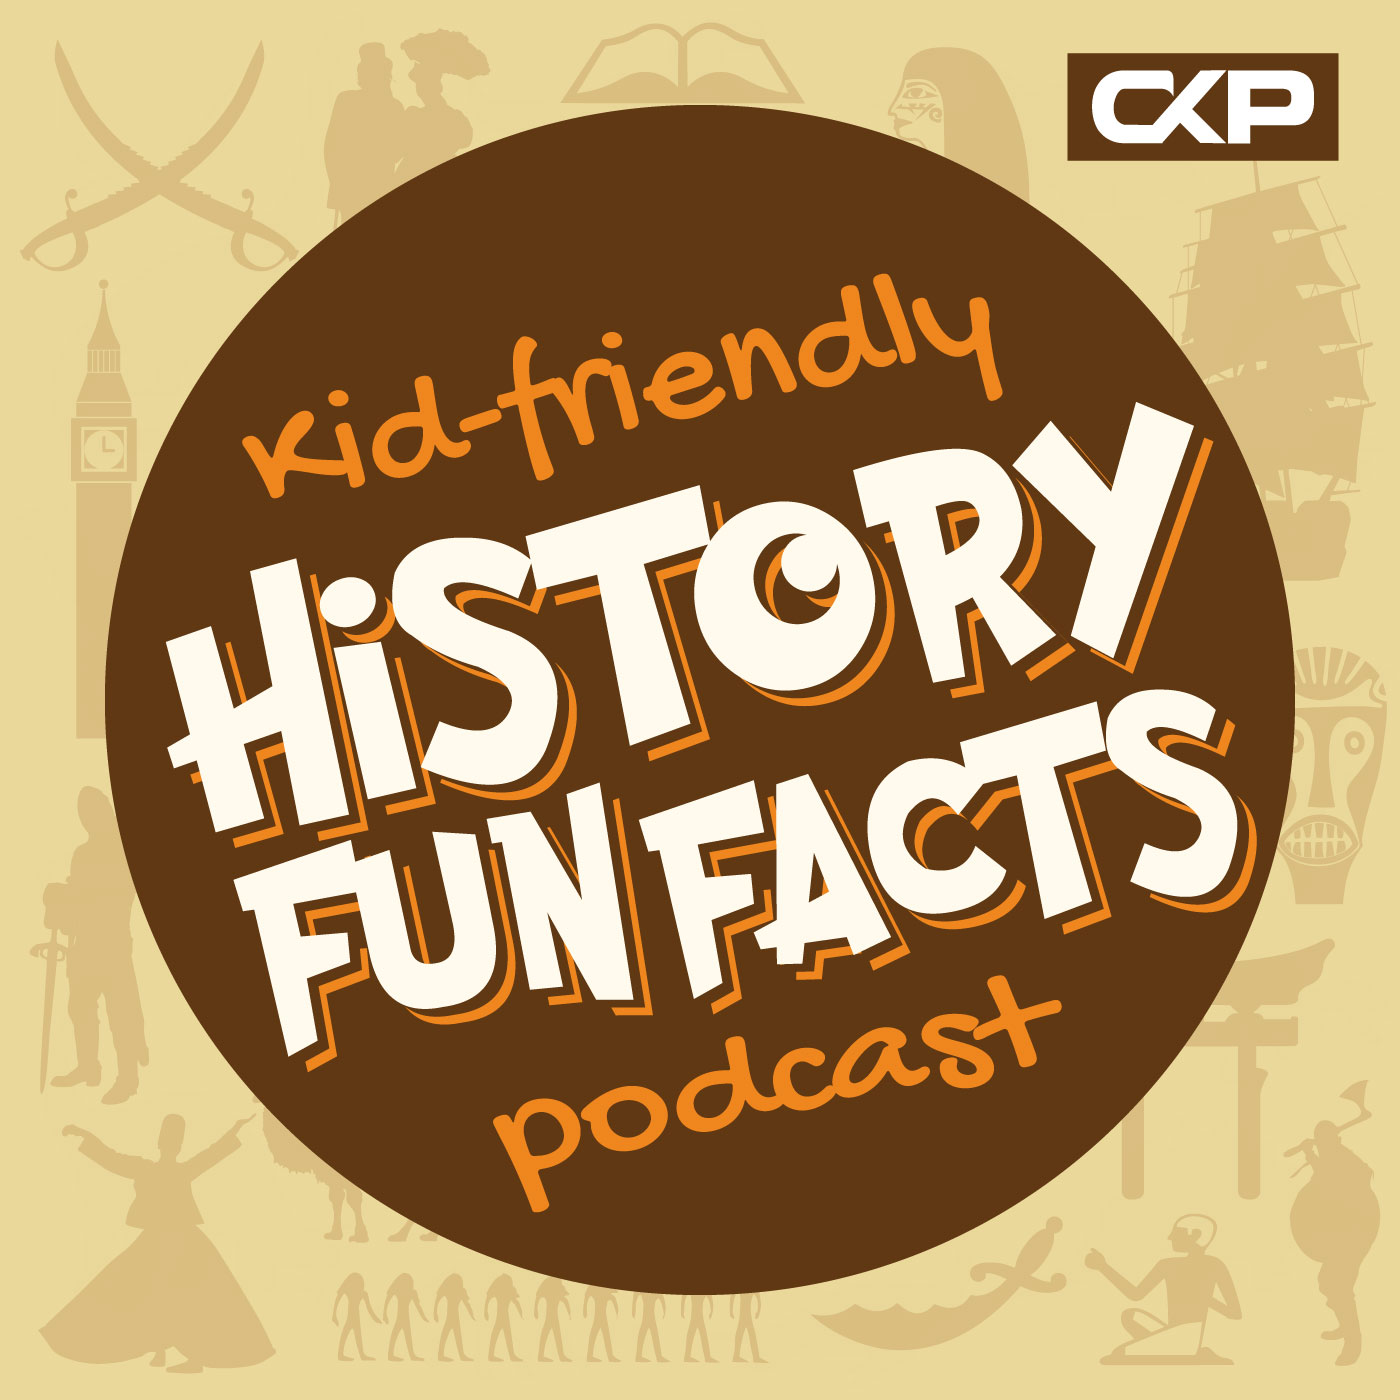 History Fun Fact of the Day - Episode Bonus - Black History 4 Kidz